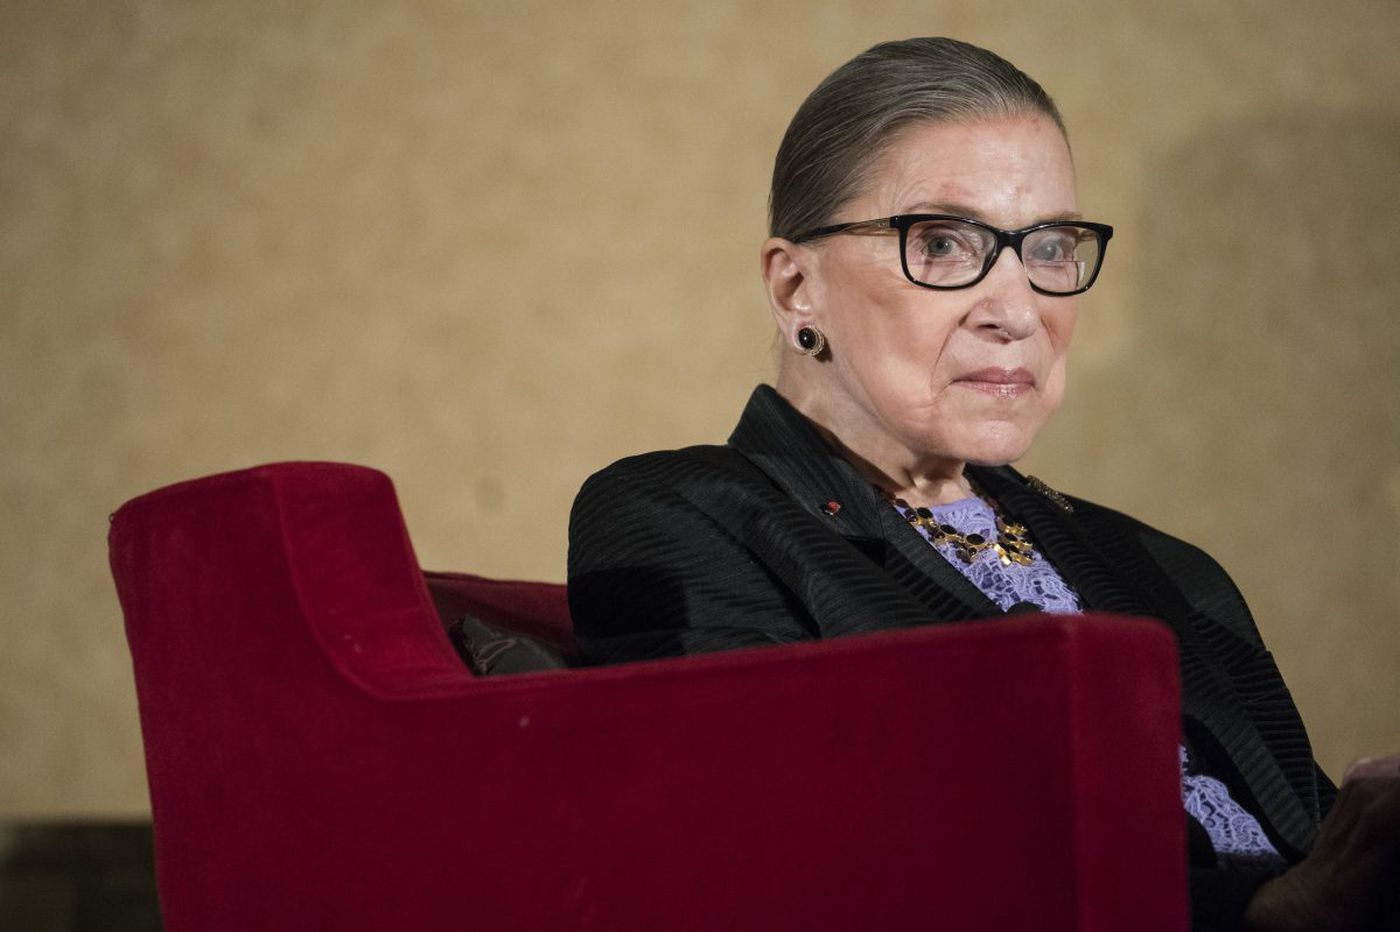 Documentary 'RBG' shows why Justice Ginsburg reigns supreme | Movie review